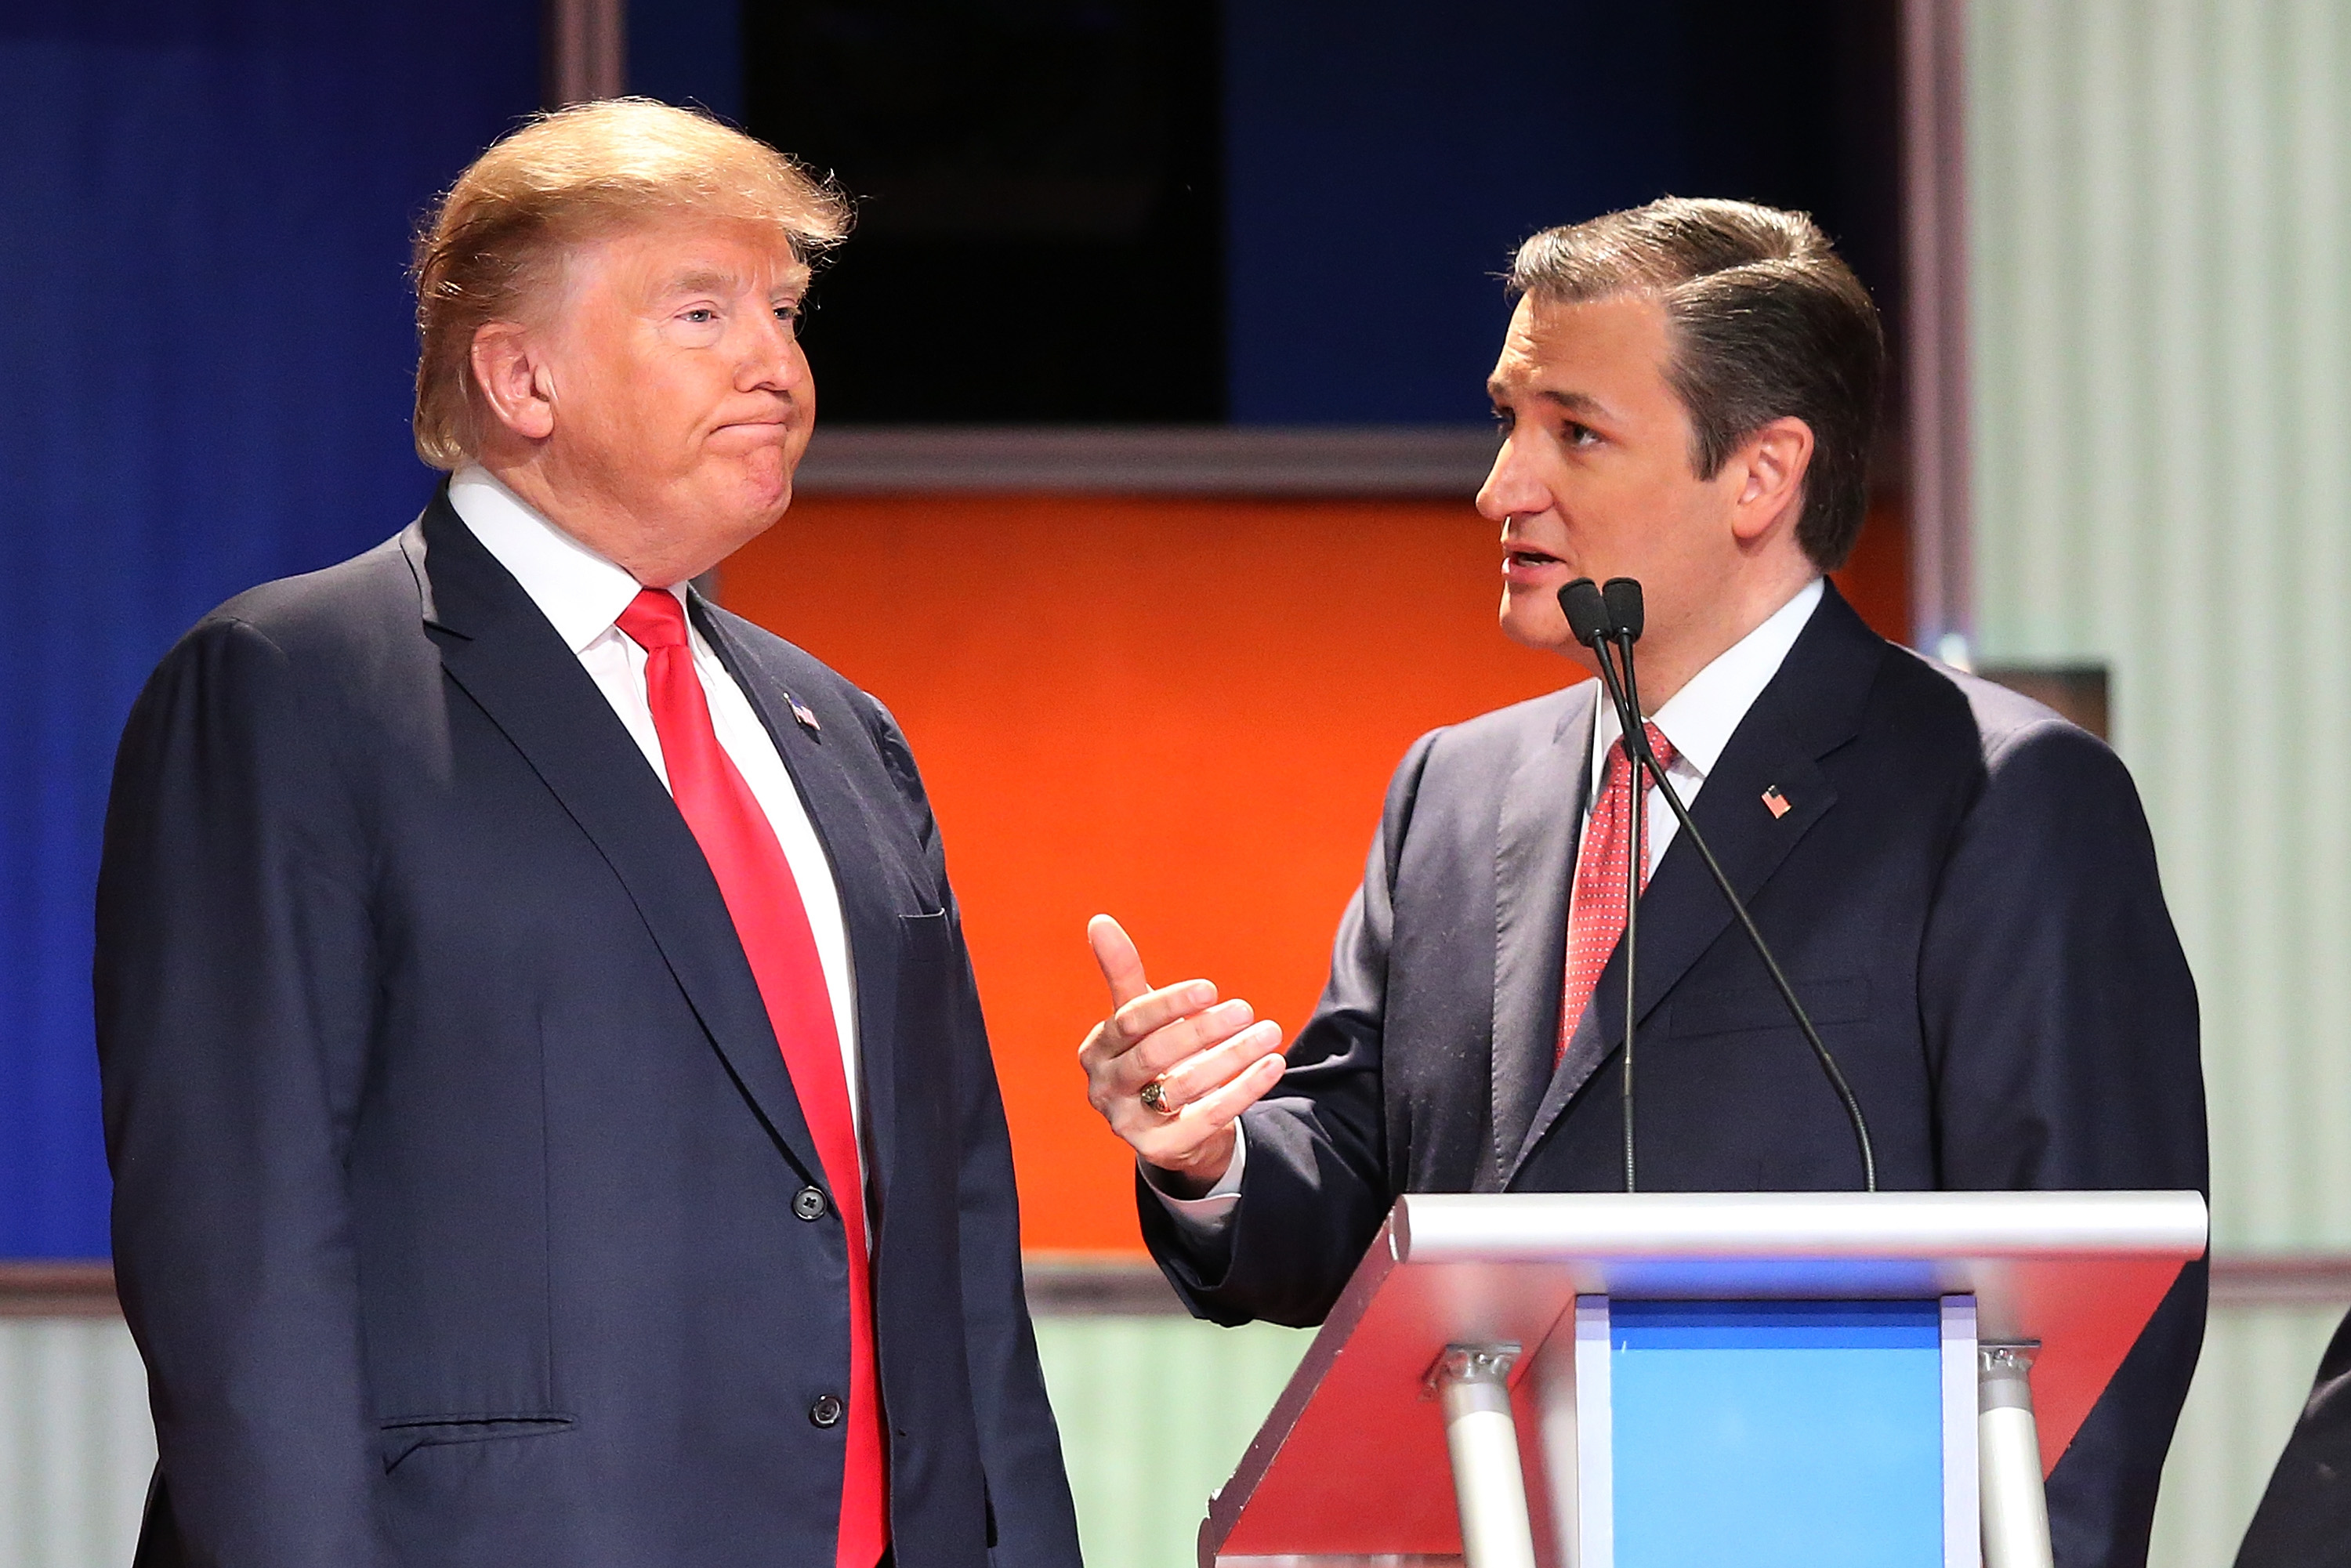 Republican presidential candidates (L-R) Donald Trump and Sen. Ted Cruz (R-TX) speak during a commercial break in the Fox Business Network Republican presidential debate at the North Charleston Coliseum and Performing Arts Center on January 14, 2016 in North Charleston, South Carolina.